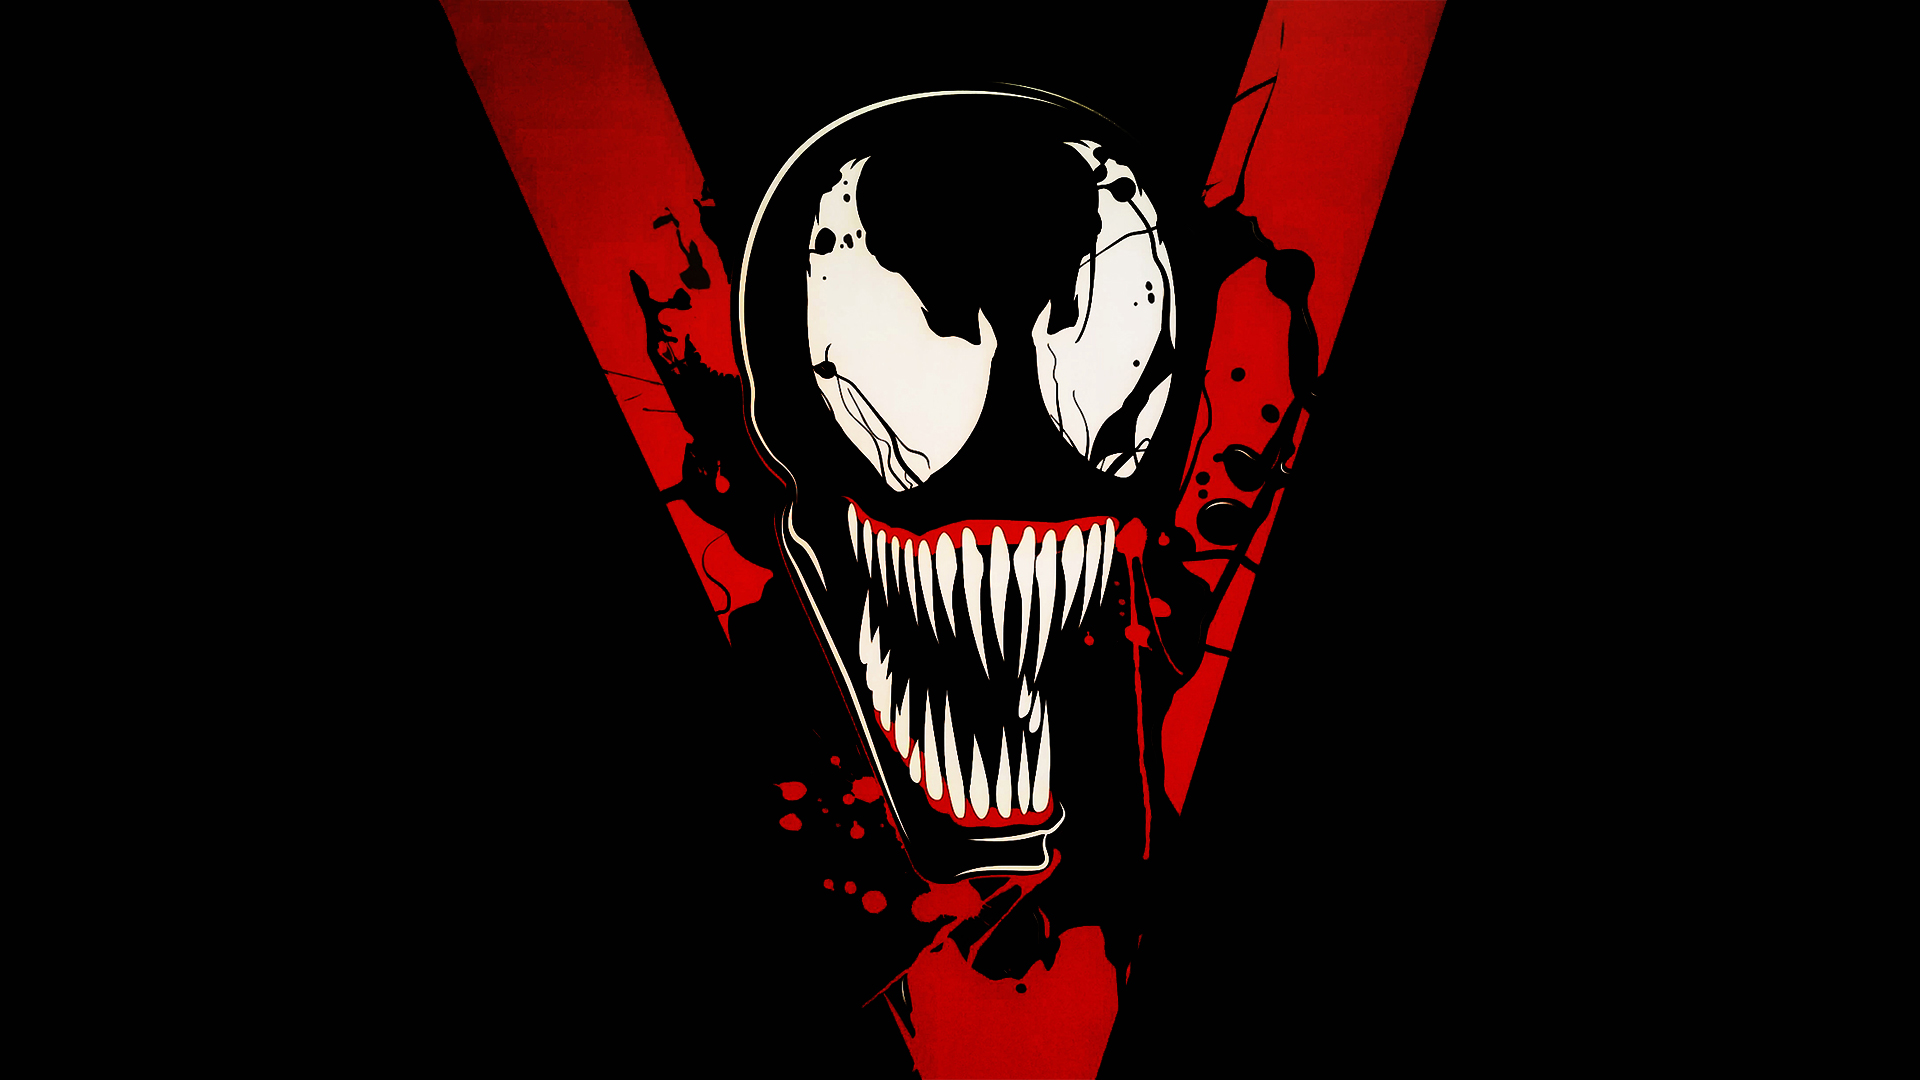 1920x1080 venom 2018 movie laptop full hd 1080p hd 4k wallpapers